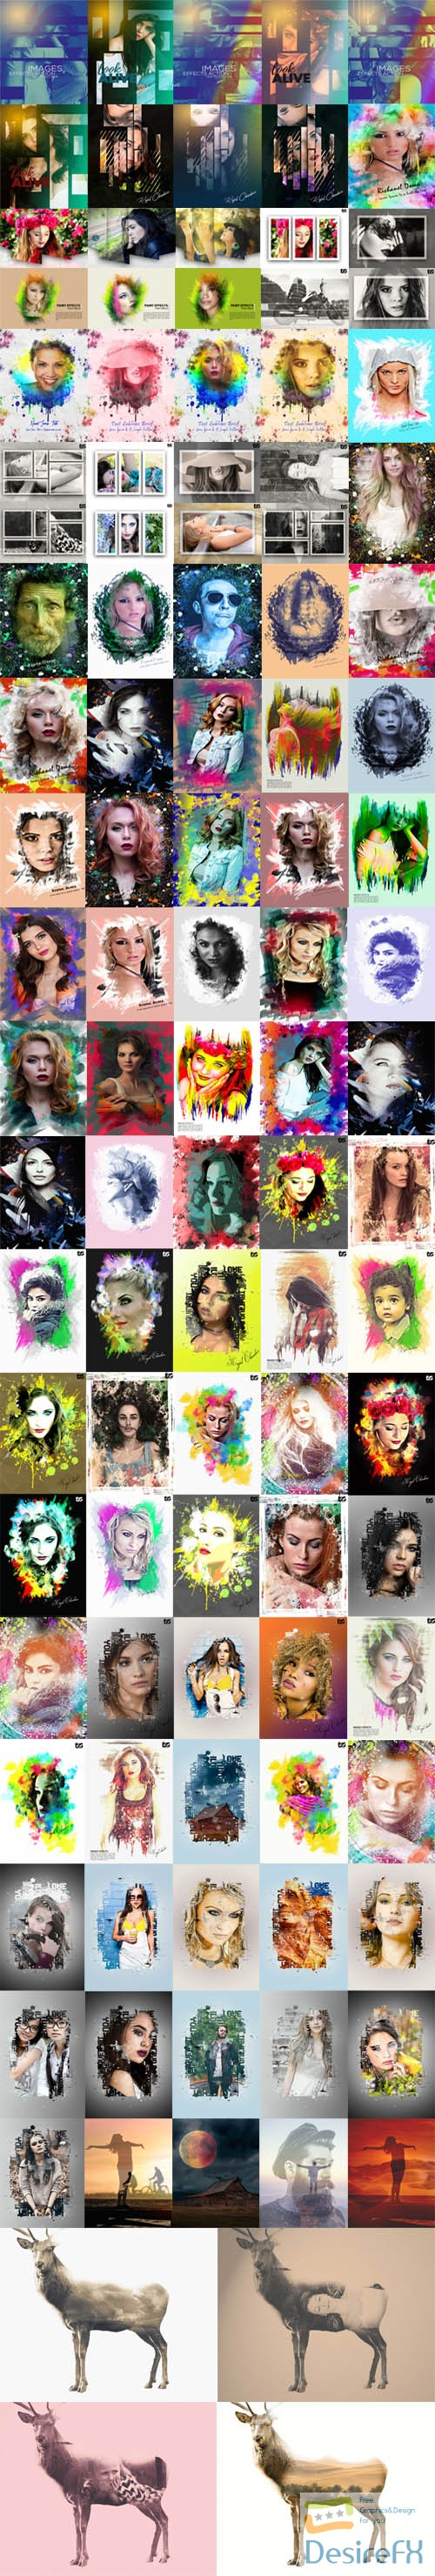 layered-psd - Awesome Collection of Photo Effects & Manipulation Templates in PSD